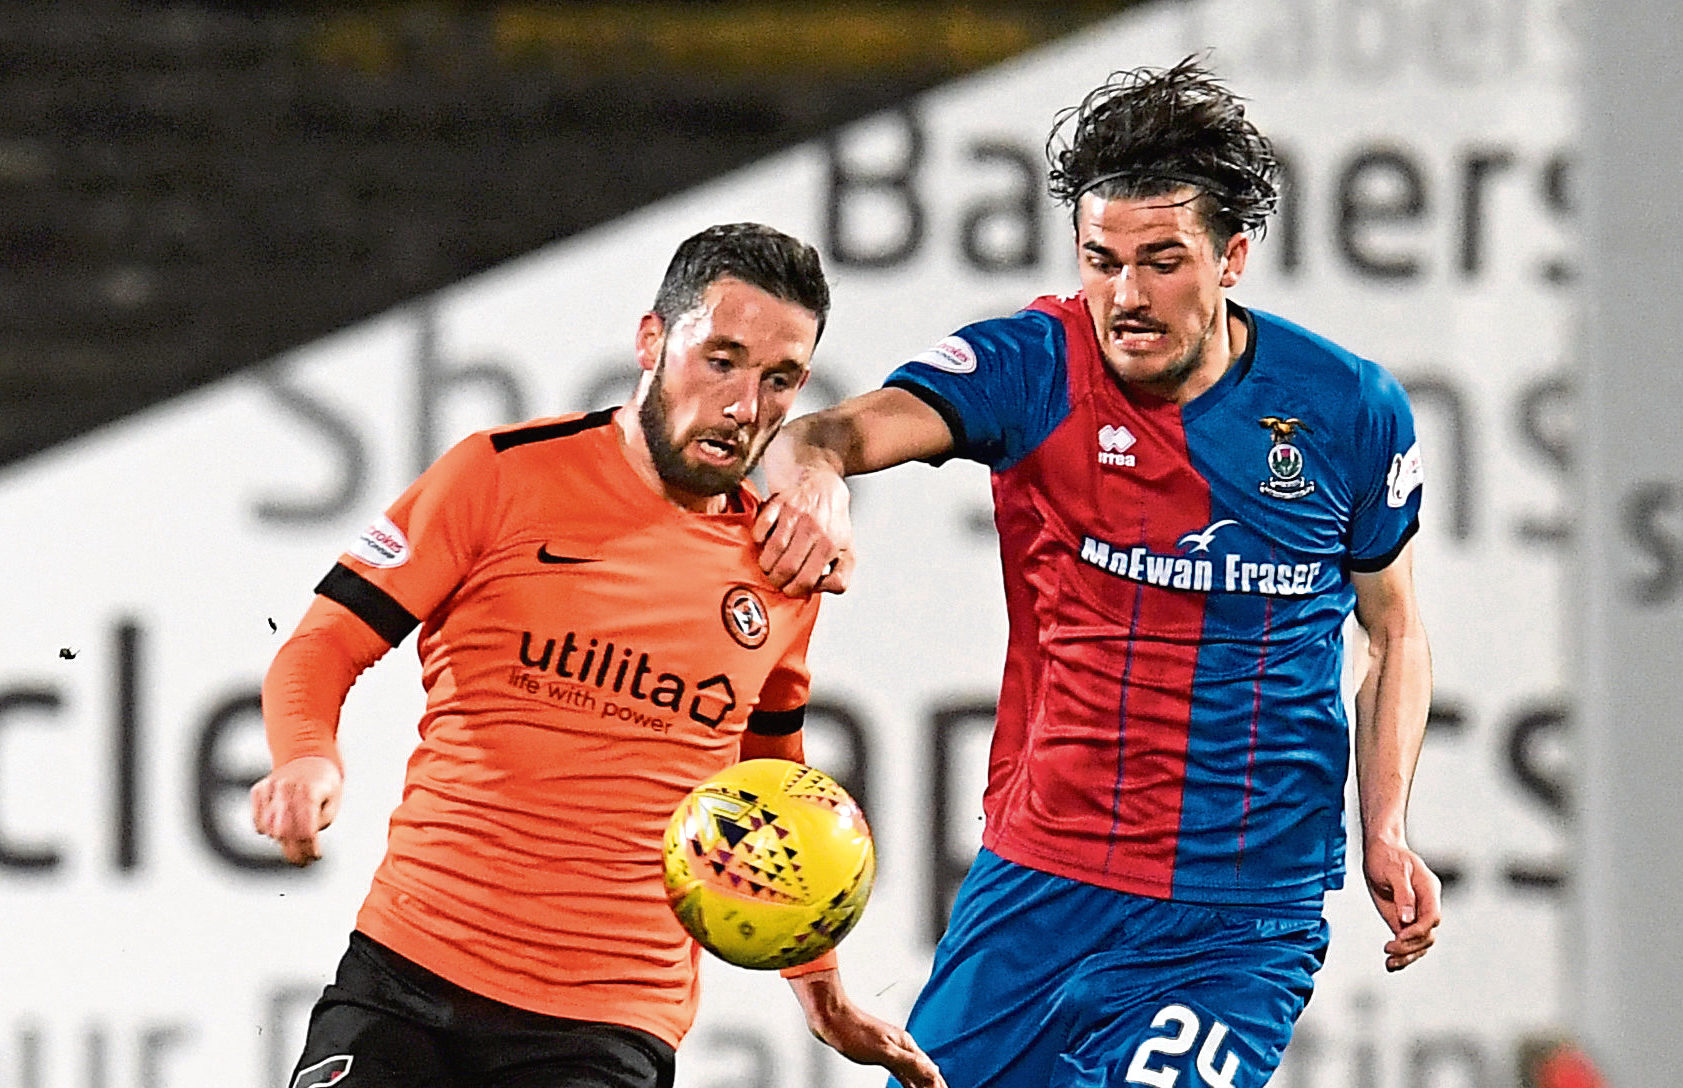 Inverness' Charlie Trafford in action